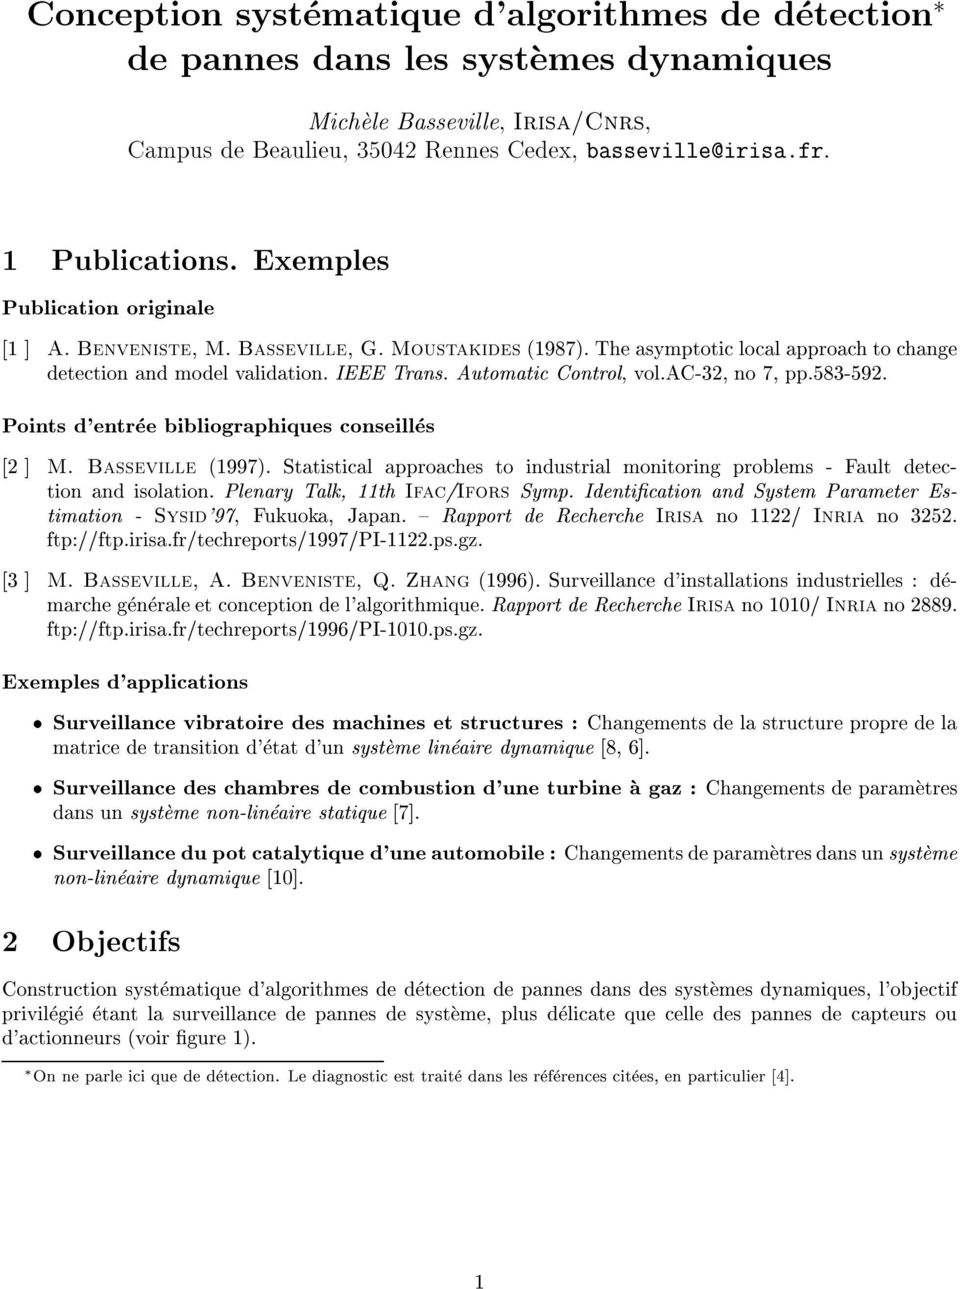 ac-32, no 7, pp.583-592. Points d'entree bibliographiques conseilles [2 ] M. Basseville (1997). Statistical approaches to industrial monitoring problems - Fault detection and isolation.